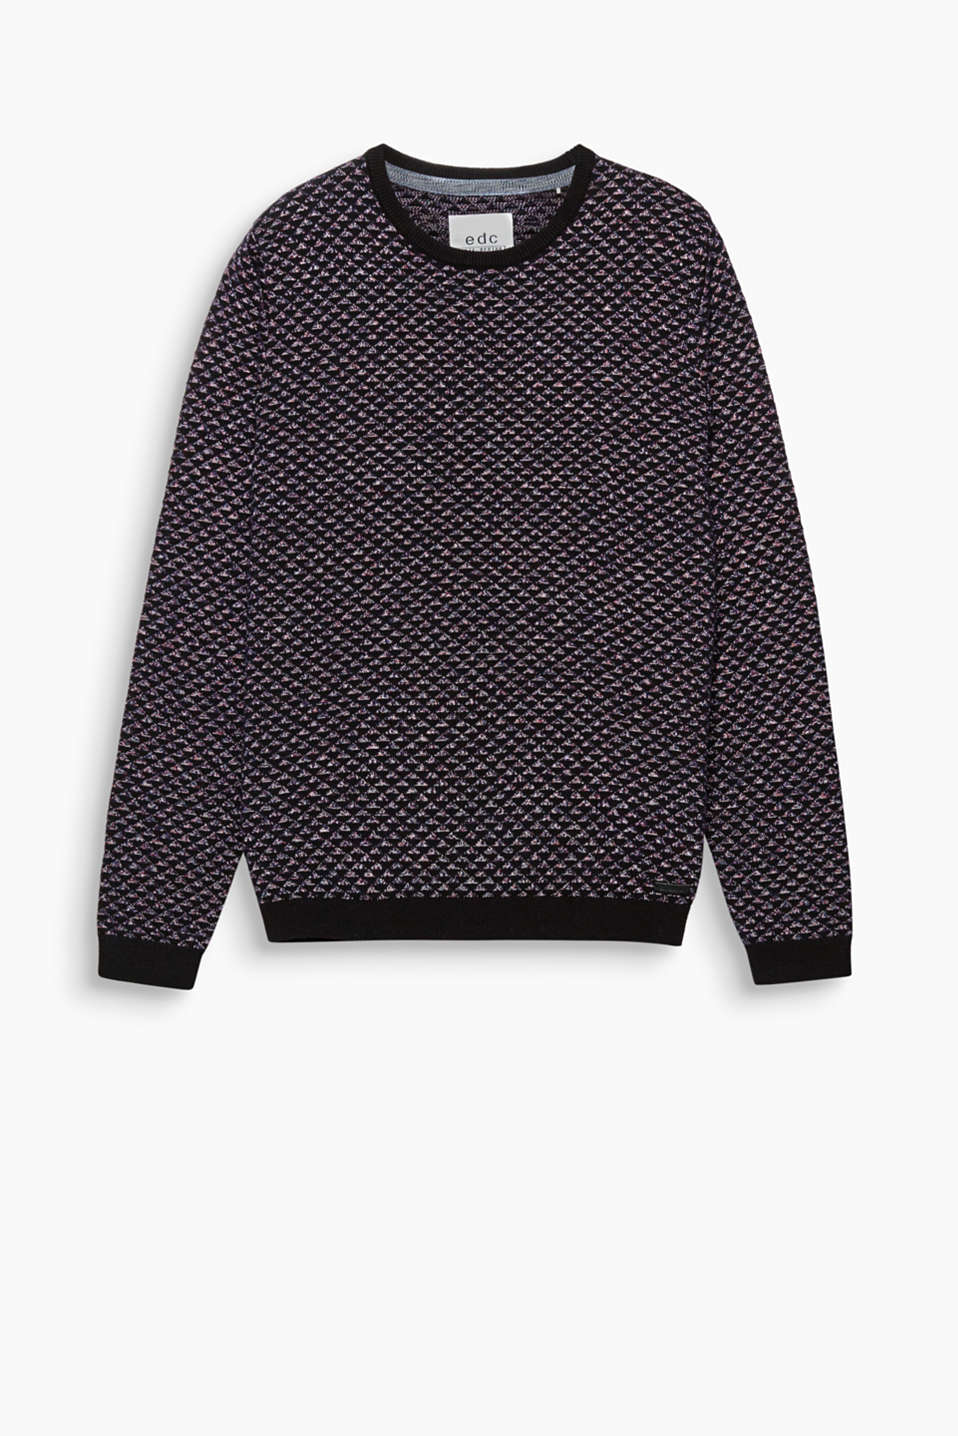 An intriguing intarsia pattern makes this fine knit jumper a head-turning piece.